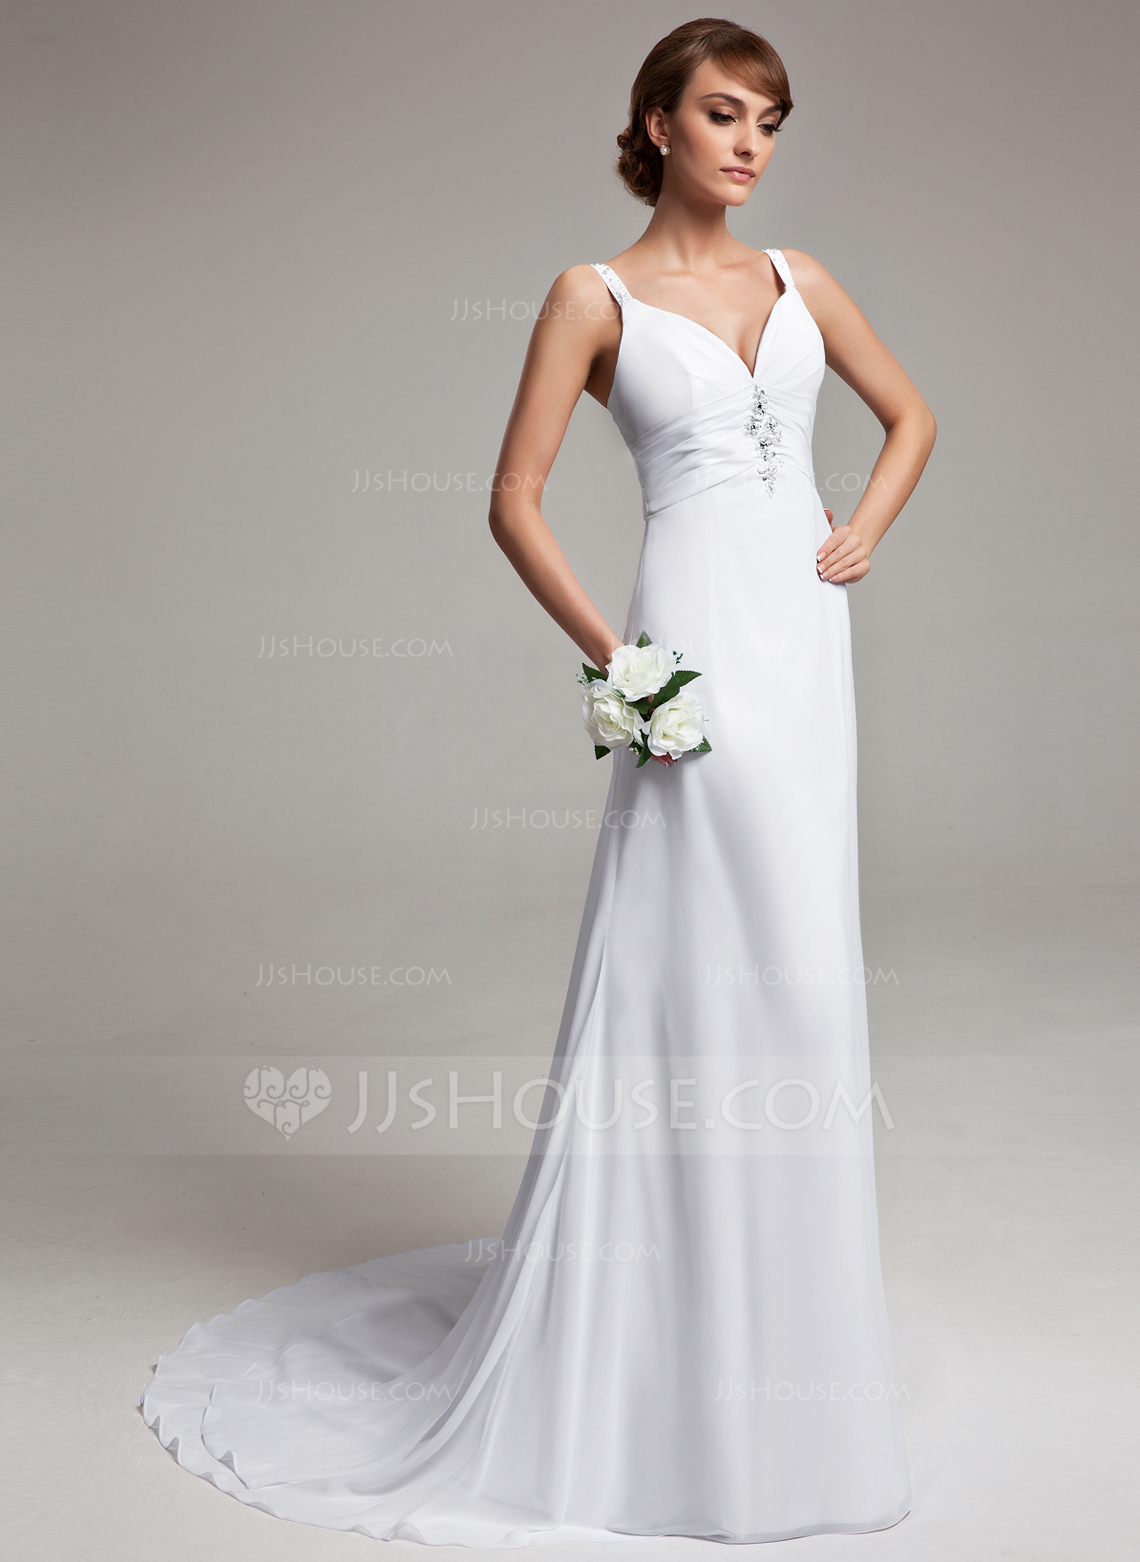 A Line Princess V Neck Court Train Chiffon Wedding Dress With Ruffle Beading g jjs house wedding dresses Home Wedding Dresses Loading zoom